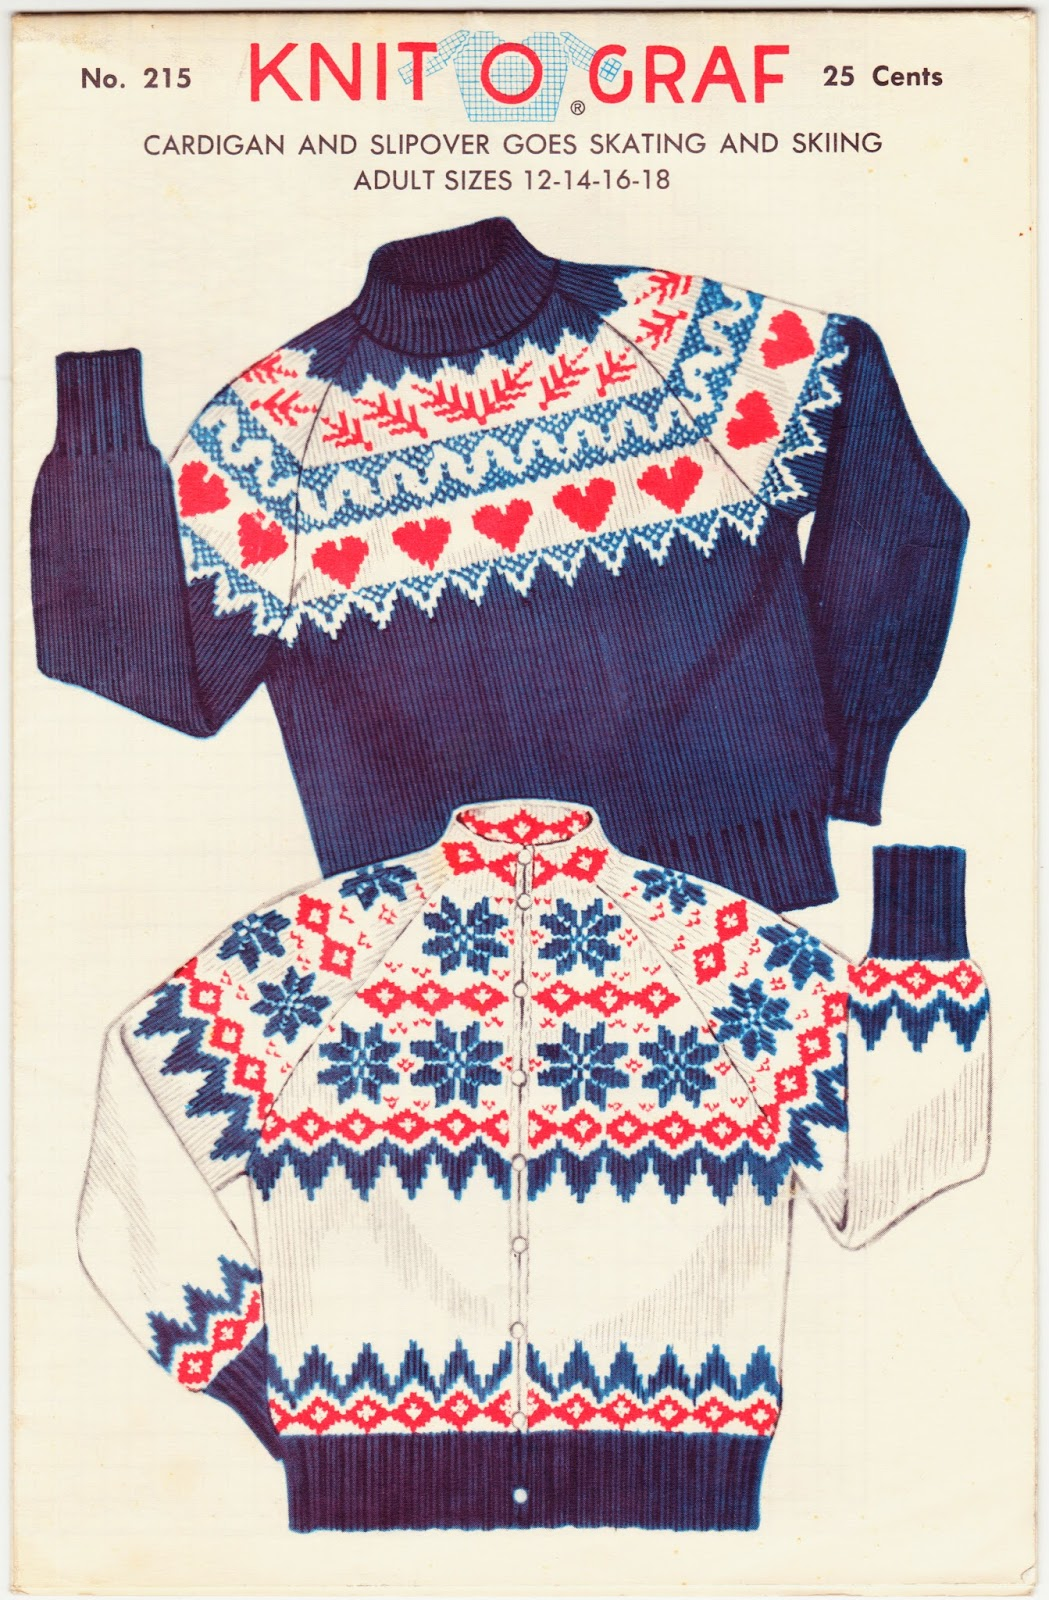 Papergreat: We might need these sweaters for the bomb cyclone and ...